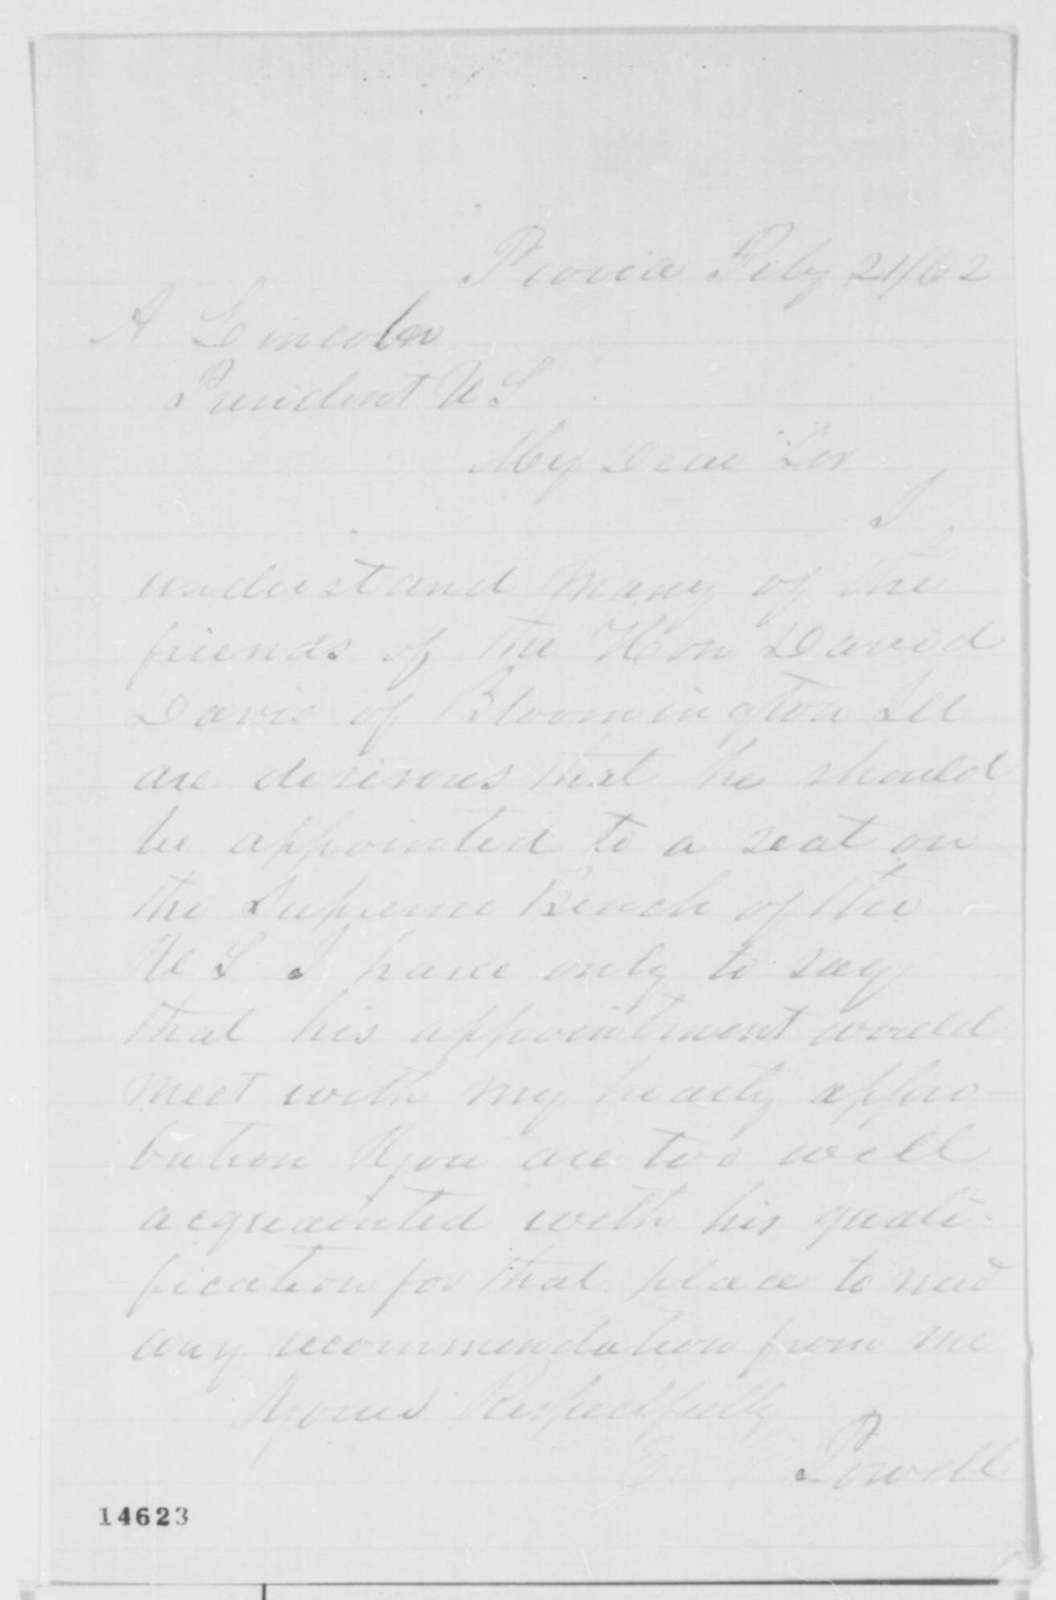 Elihu N. Powell to Abraham Lincoln, Friday, February 21, 1862  (Recommends David Davis)